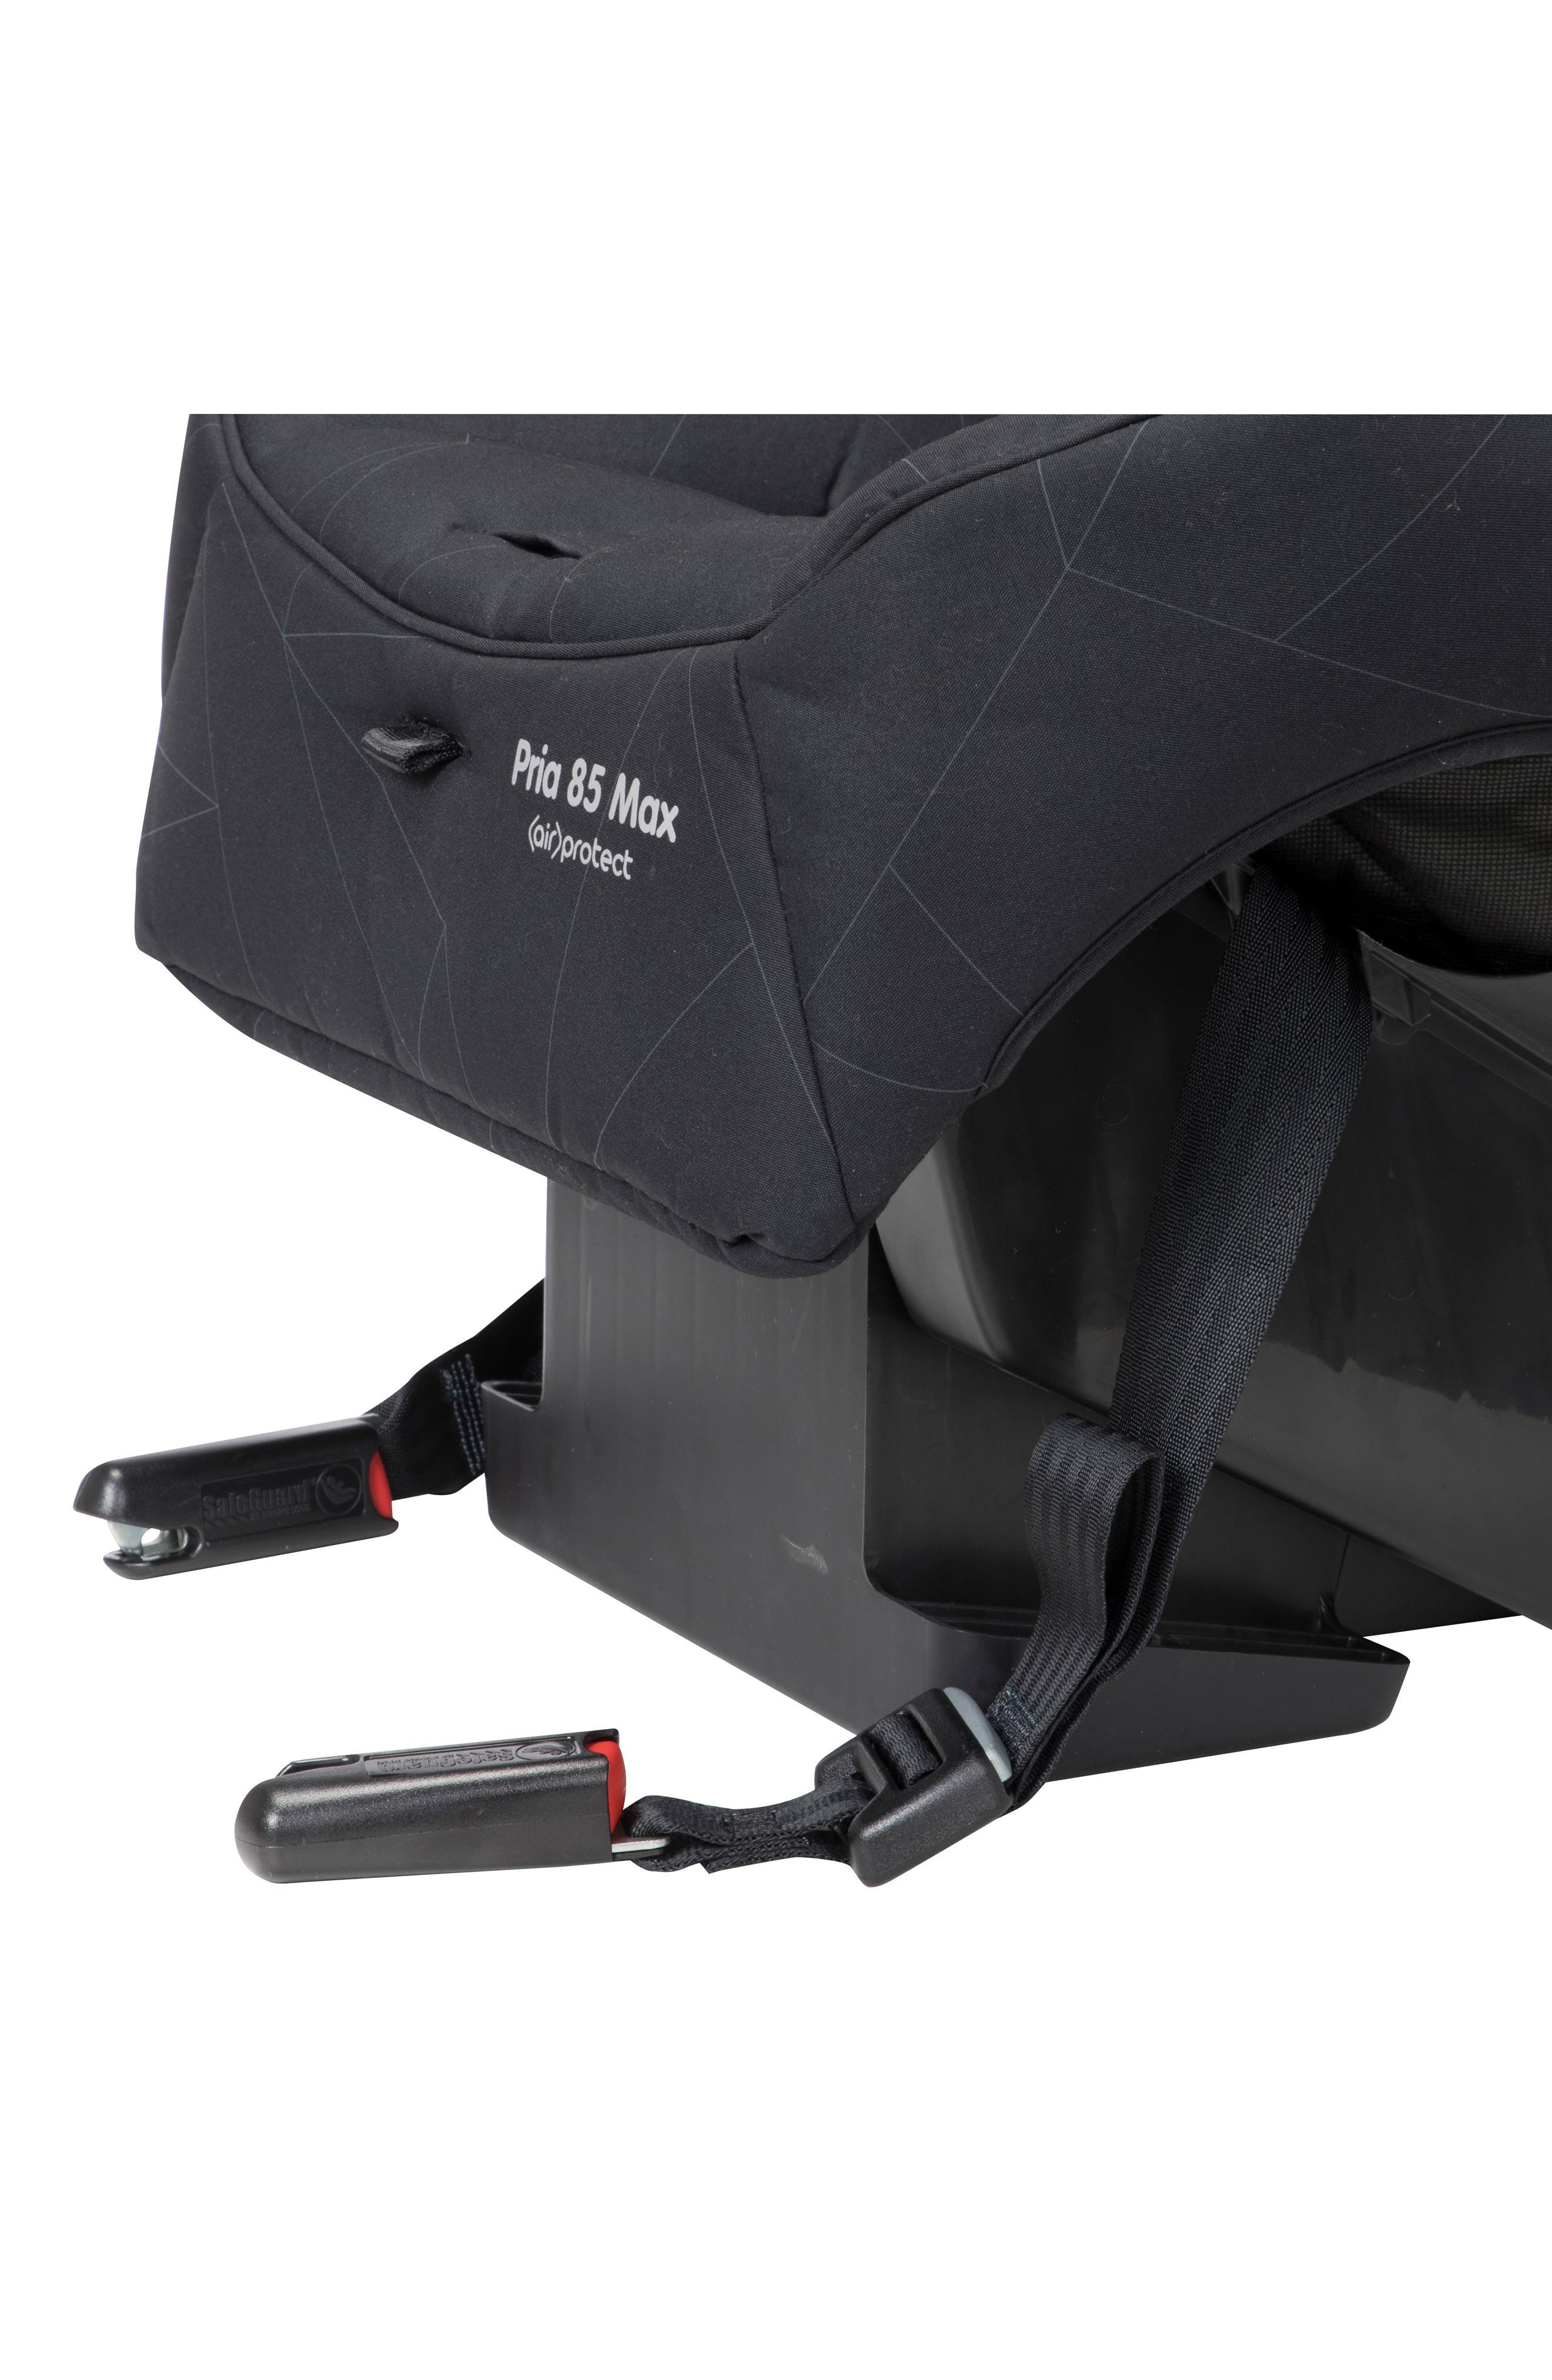 Pria<sup>™</sup> 85 Max Convertible Car Seat,                             Alternate thumbnail 8, color,                             DIAMOND LINES